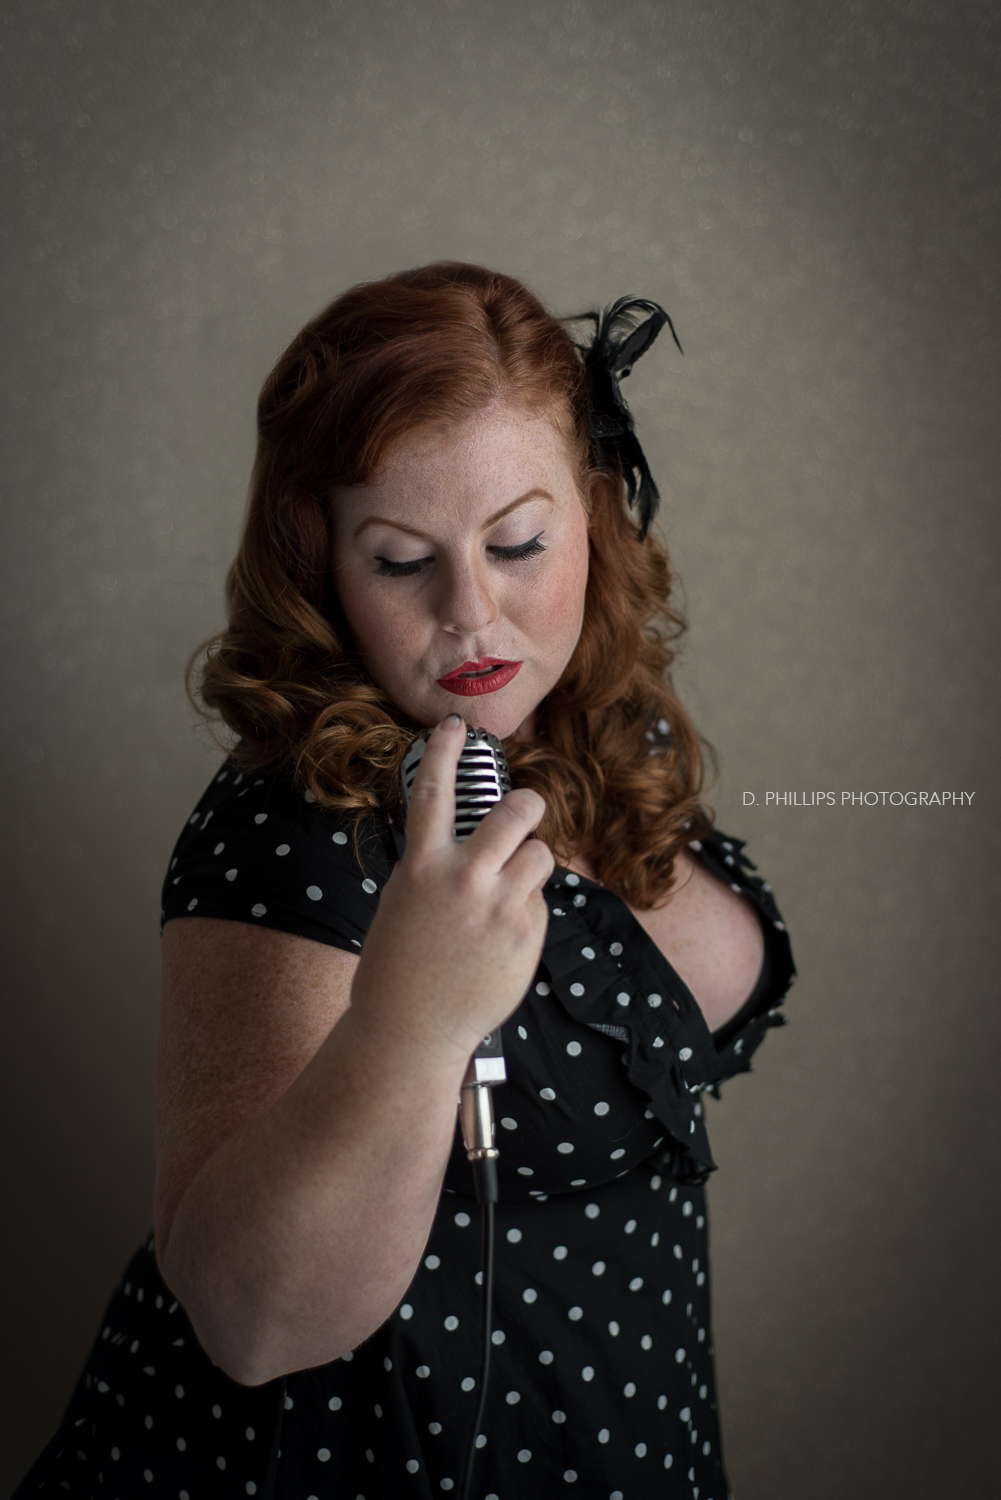 Sultry women's glamour  photo inspiration | D. Phillips Photography, Tennessee boudoir photographer